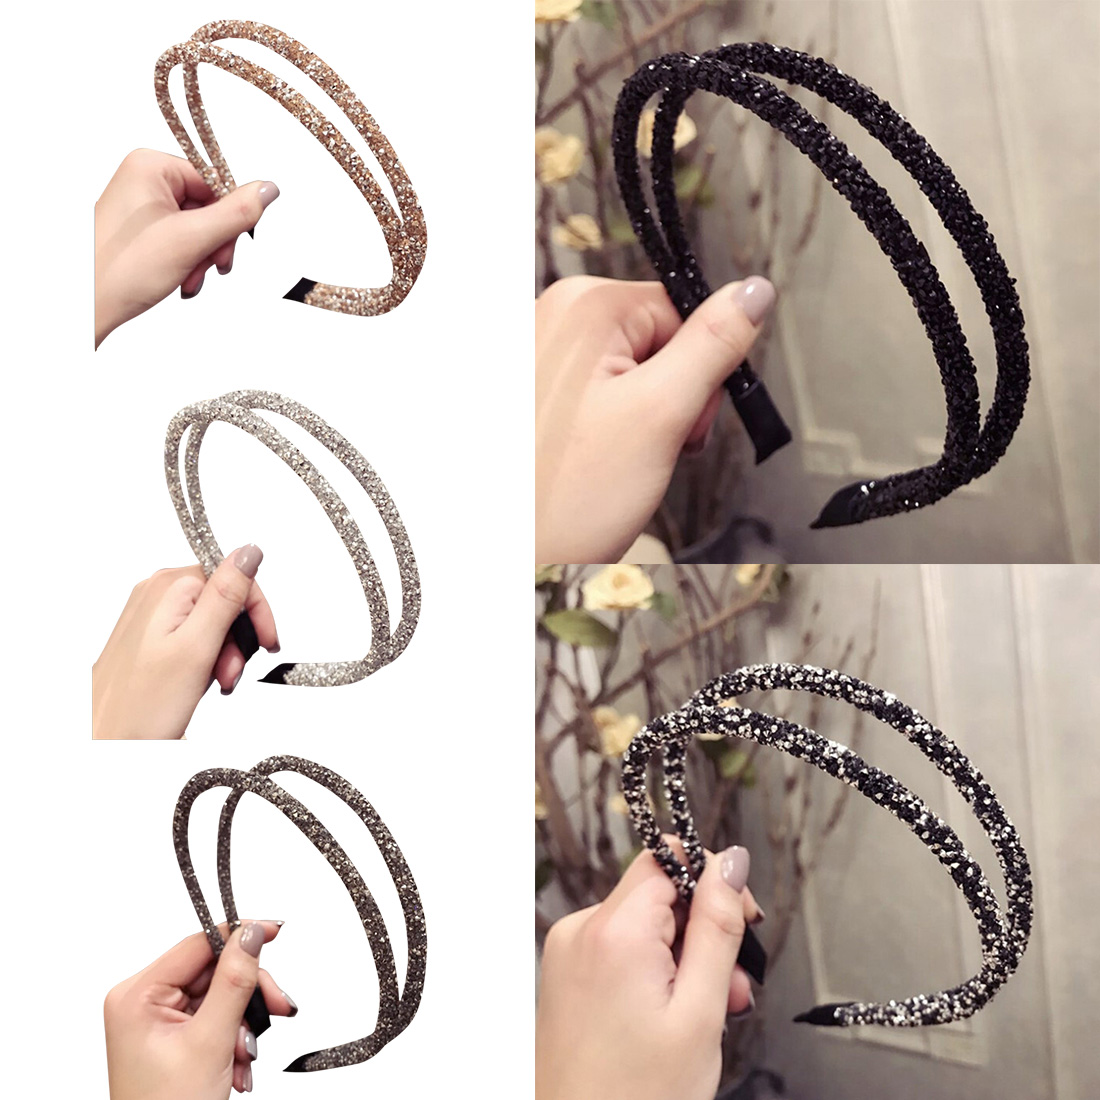 Korean Full Drilling Double Thin Knot Hairband Women Girls Hair Head Hoop Bands Accessories Hair Scrunchy Headwear Gifts in Women 39 s Hair Accessories from Apparel Accessories